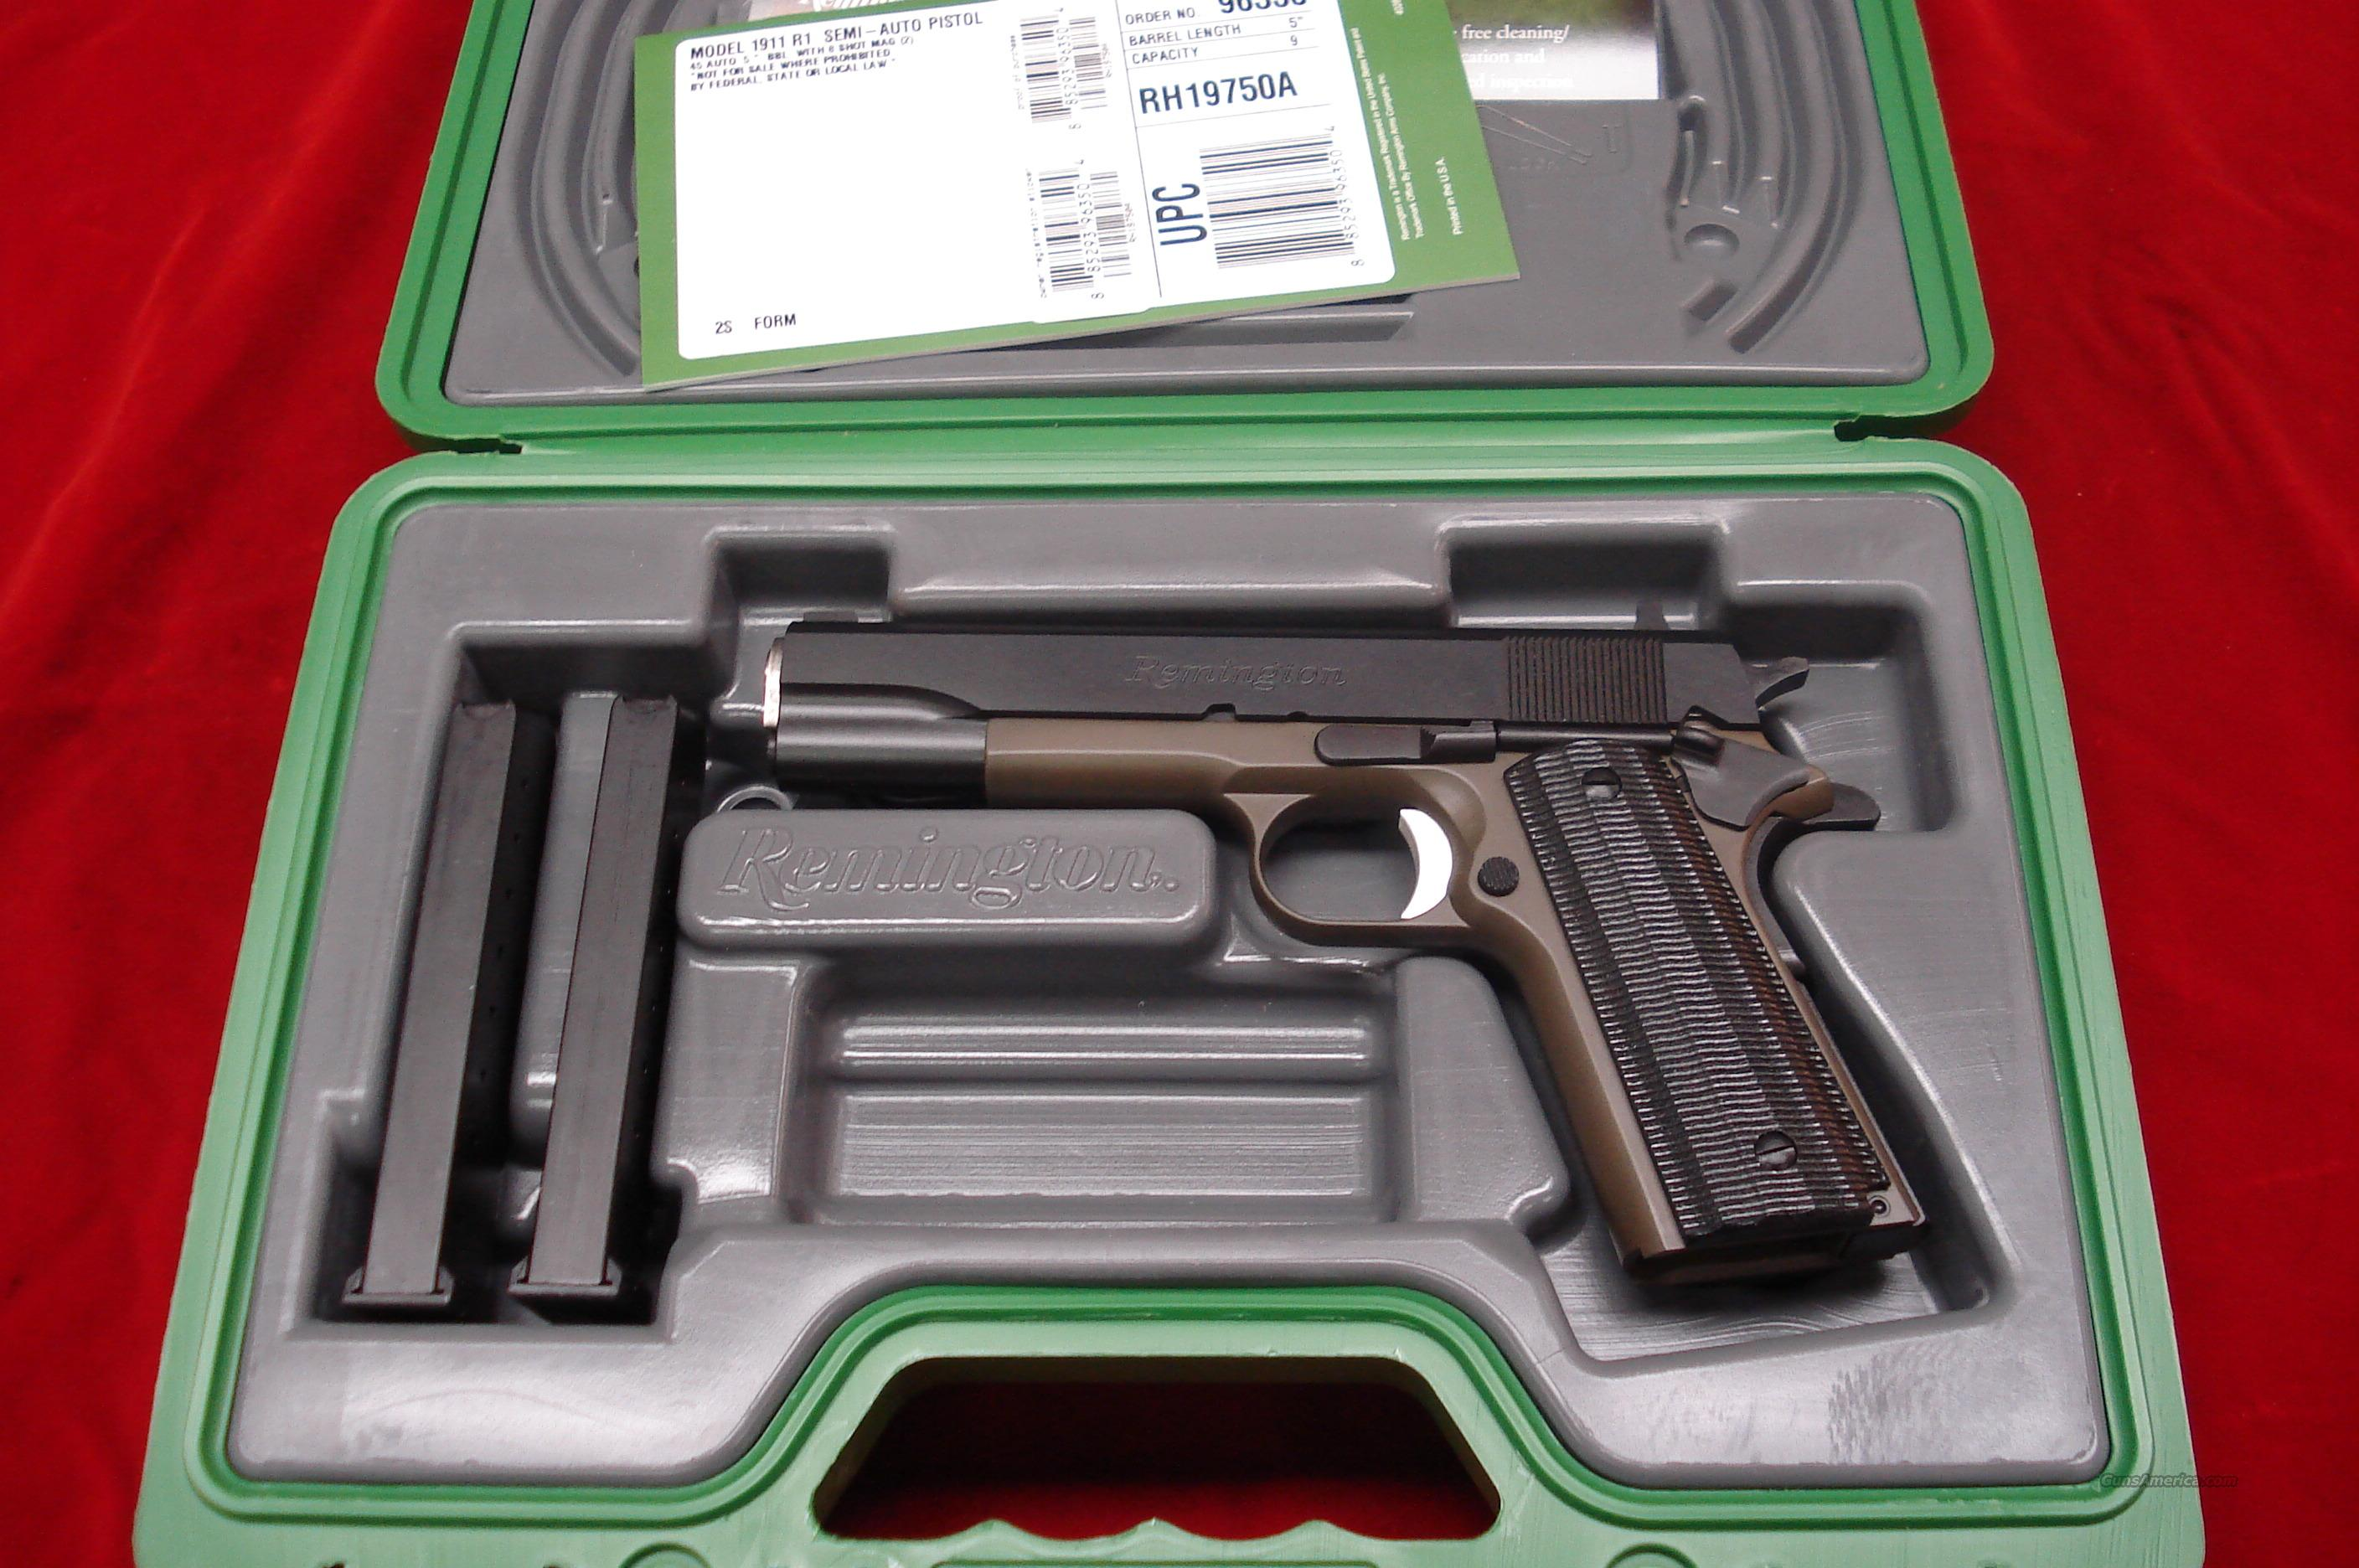 REMINGTON 1911 R1 45ACP GREEN DURACOAT FRAME WITH MICARTA GRIPS NEW {{ IN STOCK READY TO SHIP }}  Guns > Pistols > Remington Pistols - Modern